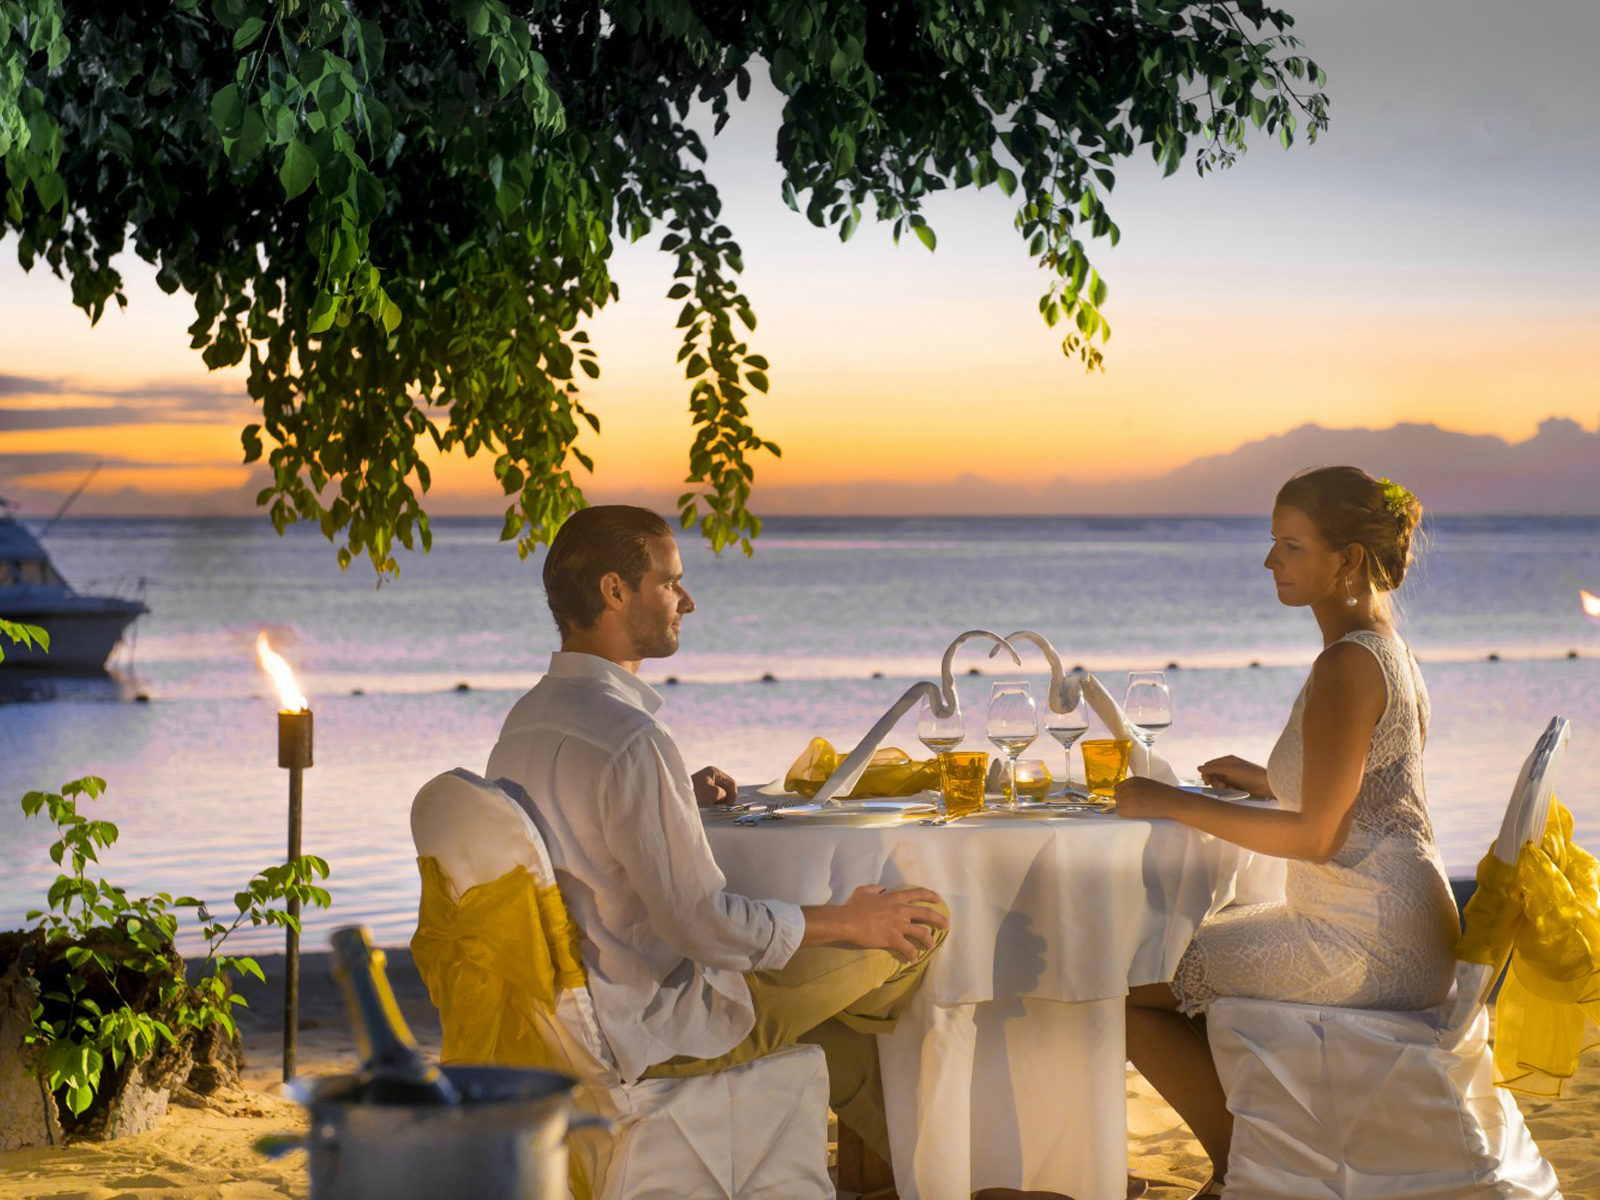 Love Couple Romantic Dinner On The Beach Hd Love Wallpaper 1920x1200